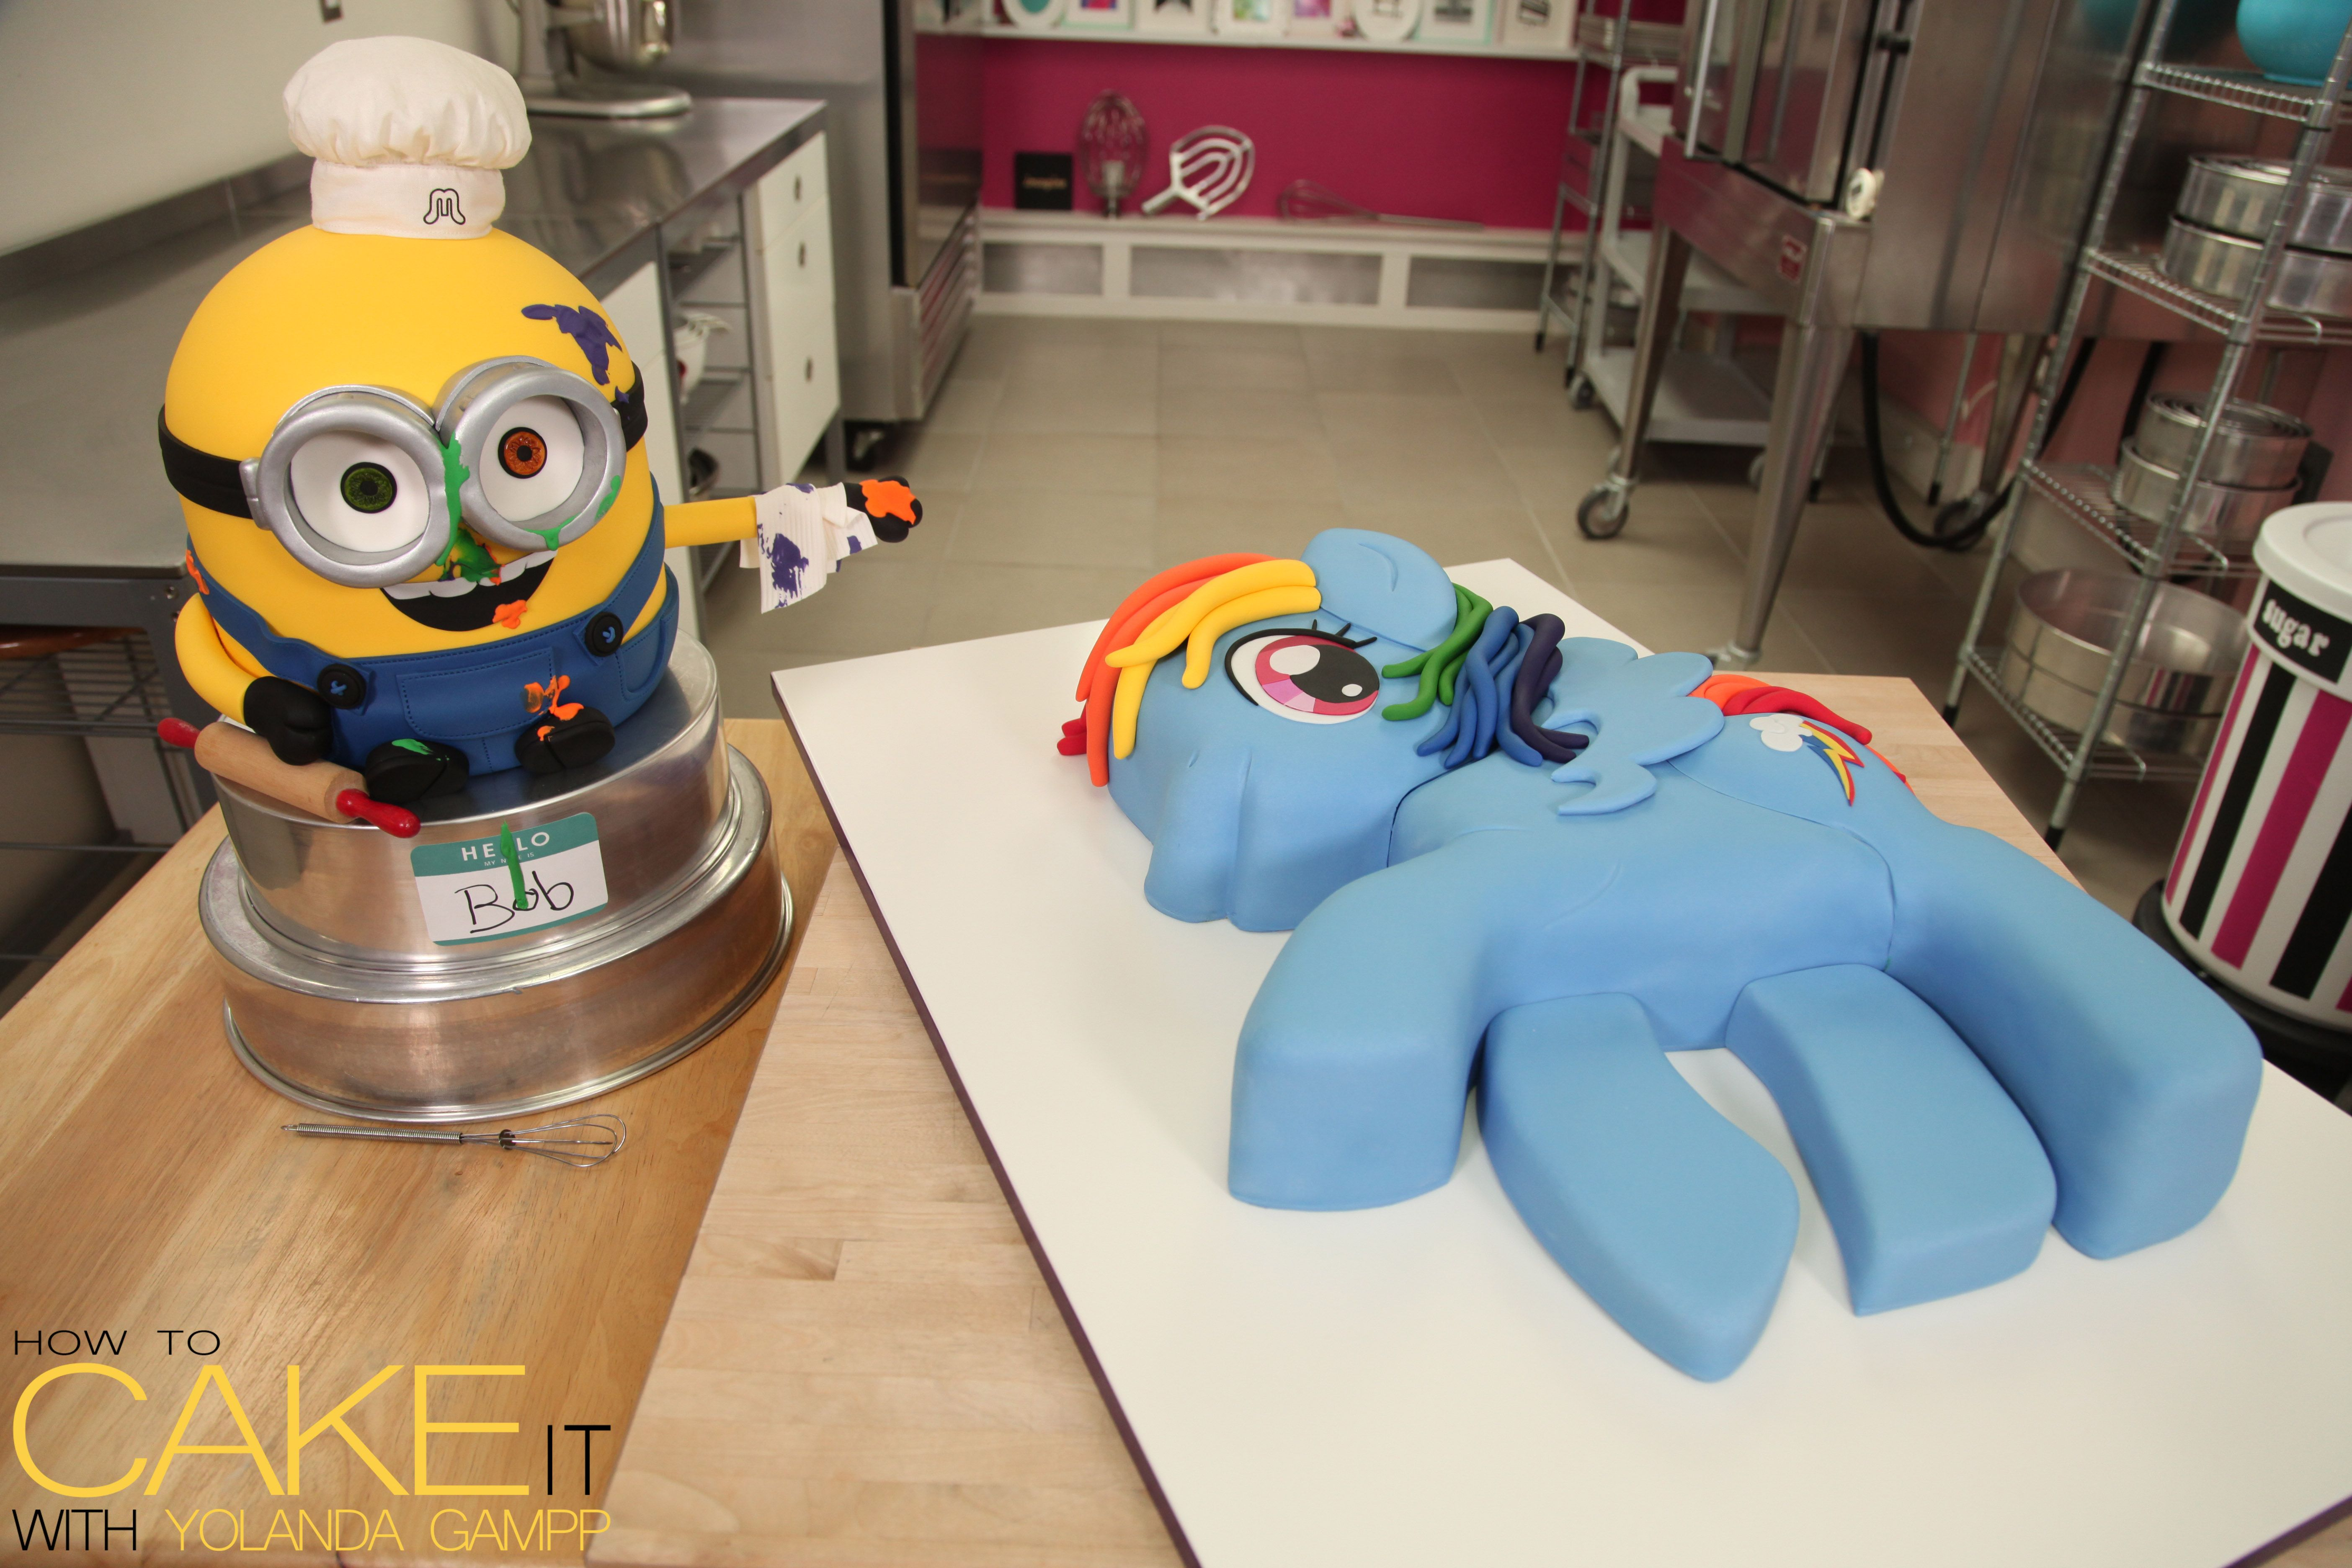 While My Chocolate Cake Fondant Covered Minion Bob Wasnt The Most Helpful He Did Make For Great Company When I Was Making Little Pony